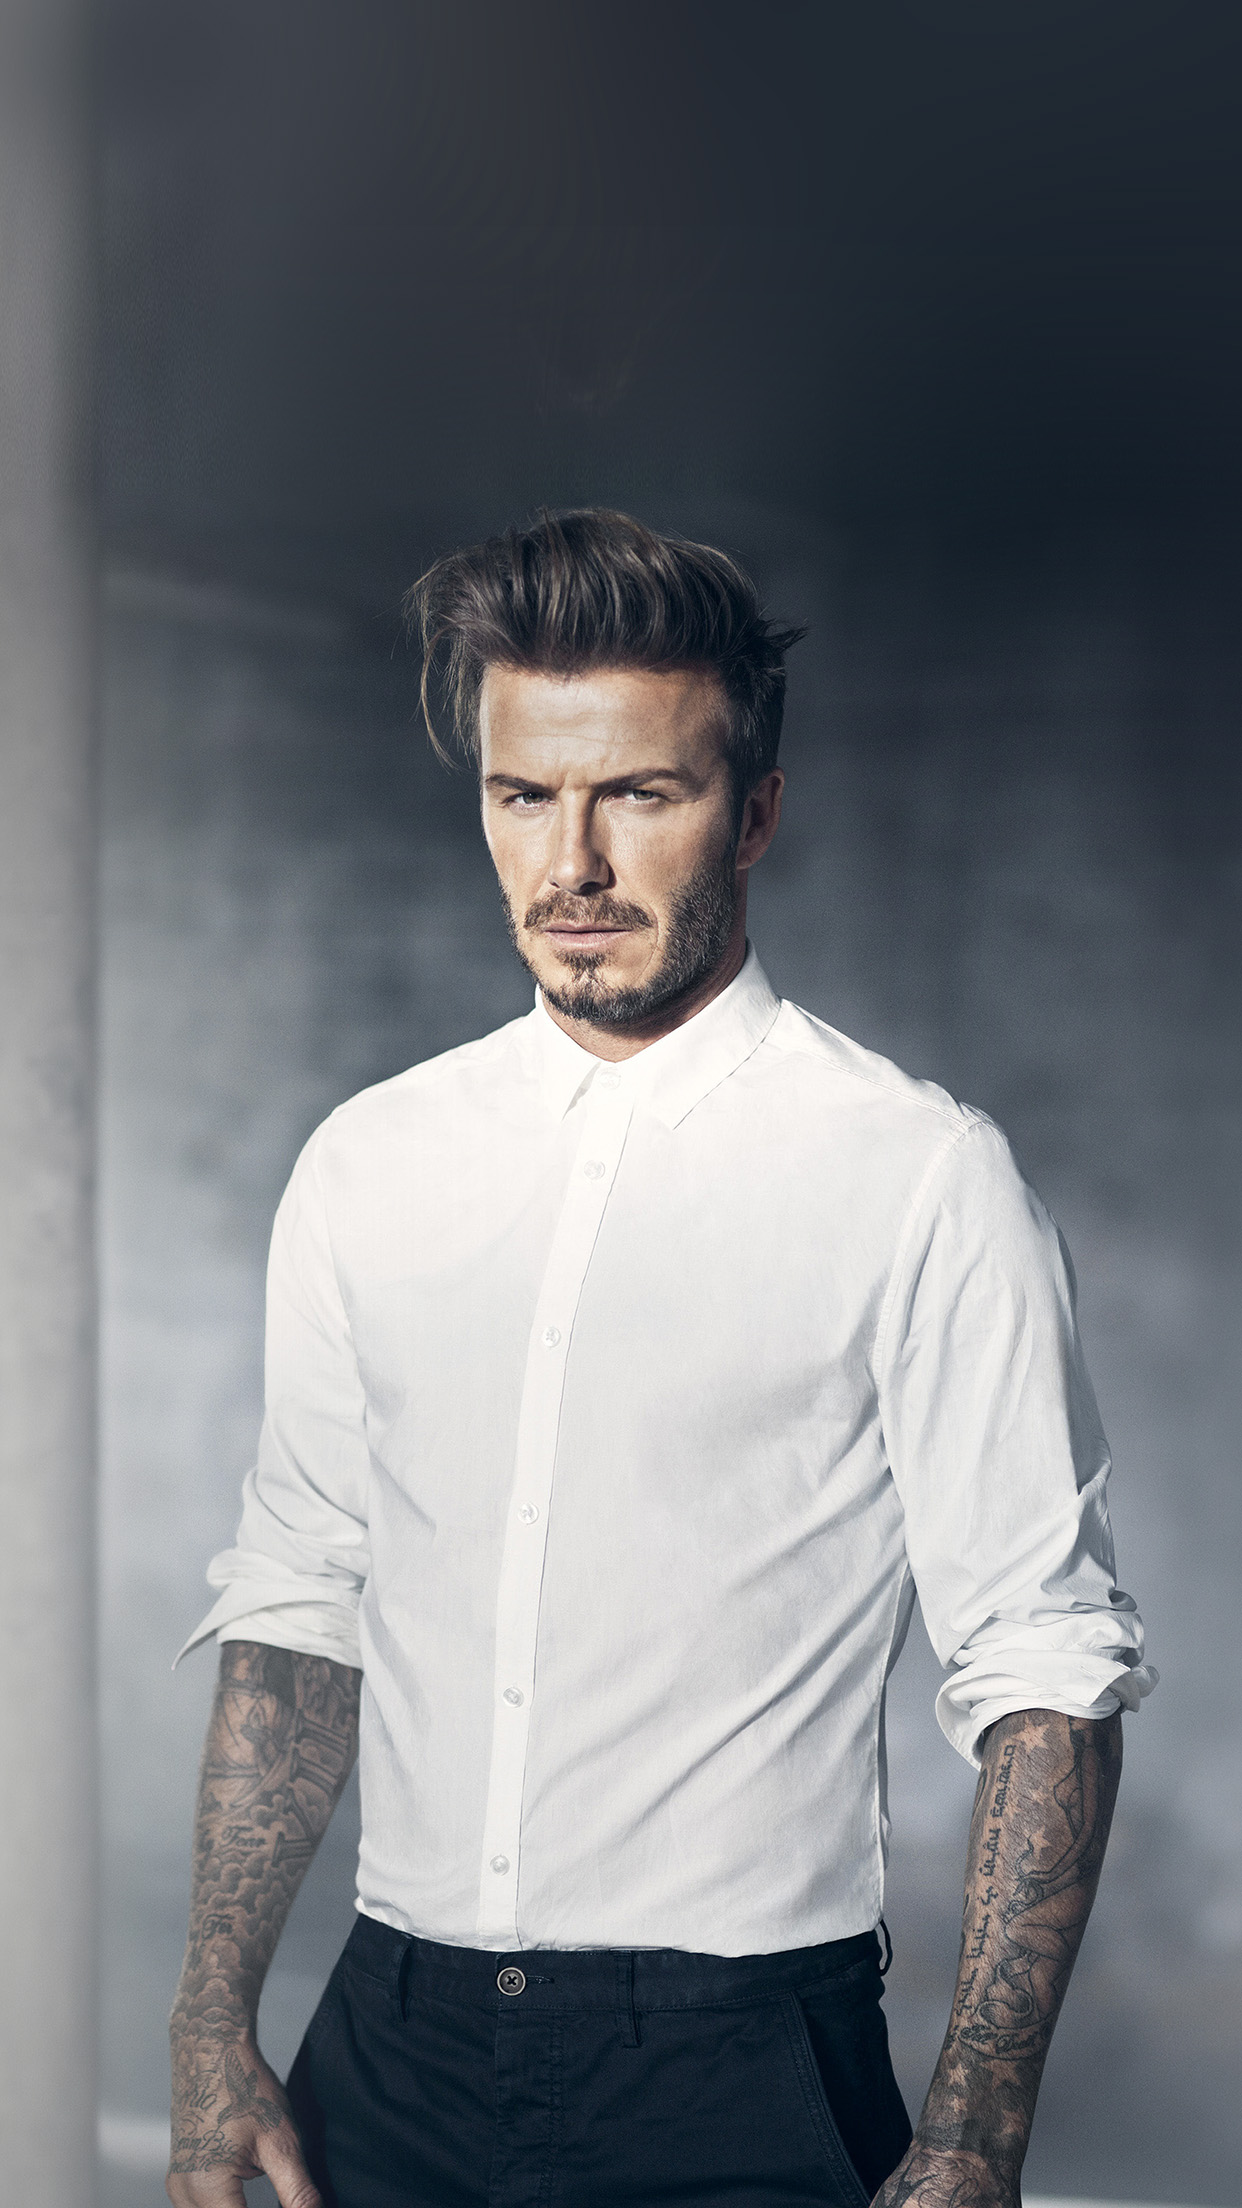 David Beckham Model Sports Handsome Android wallpaper